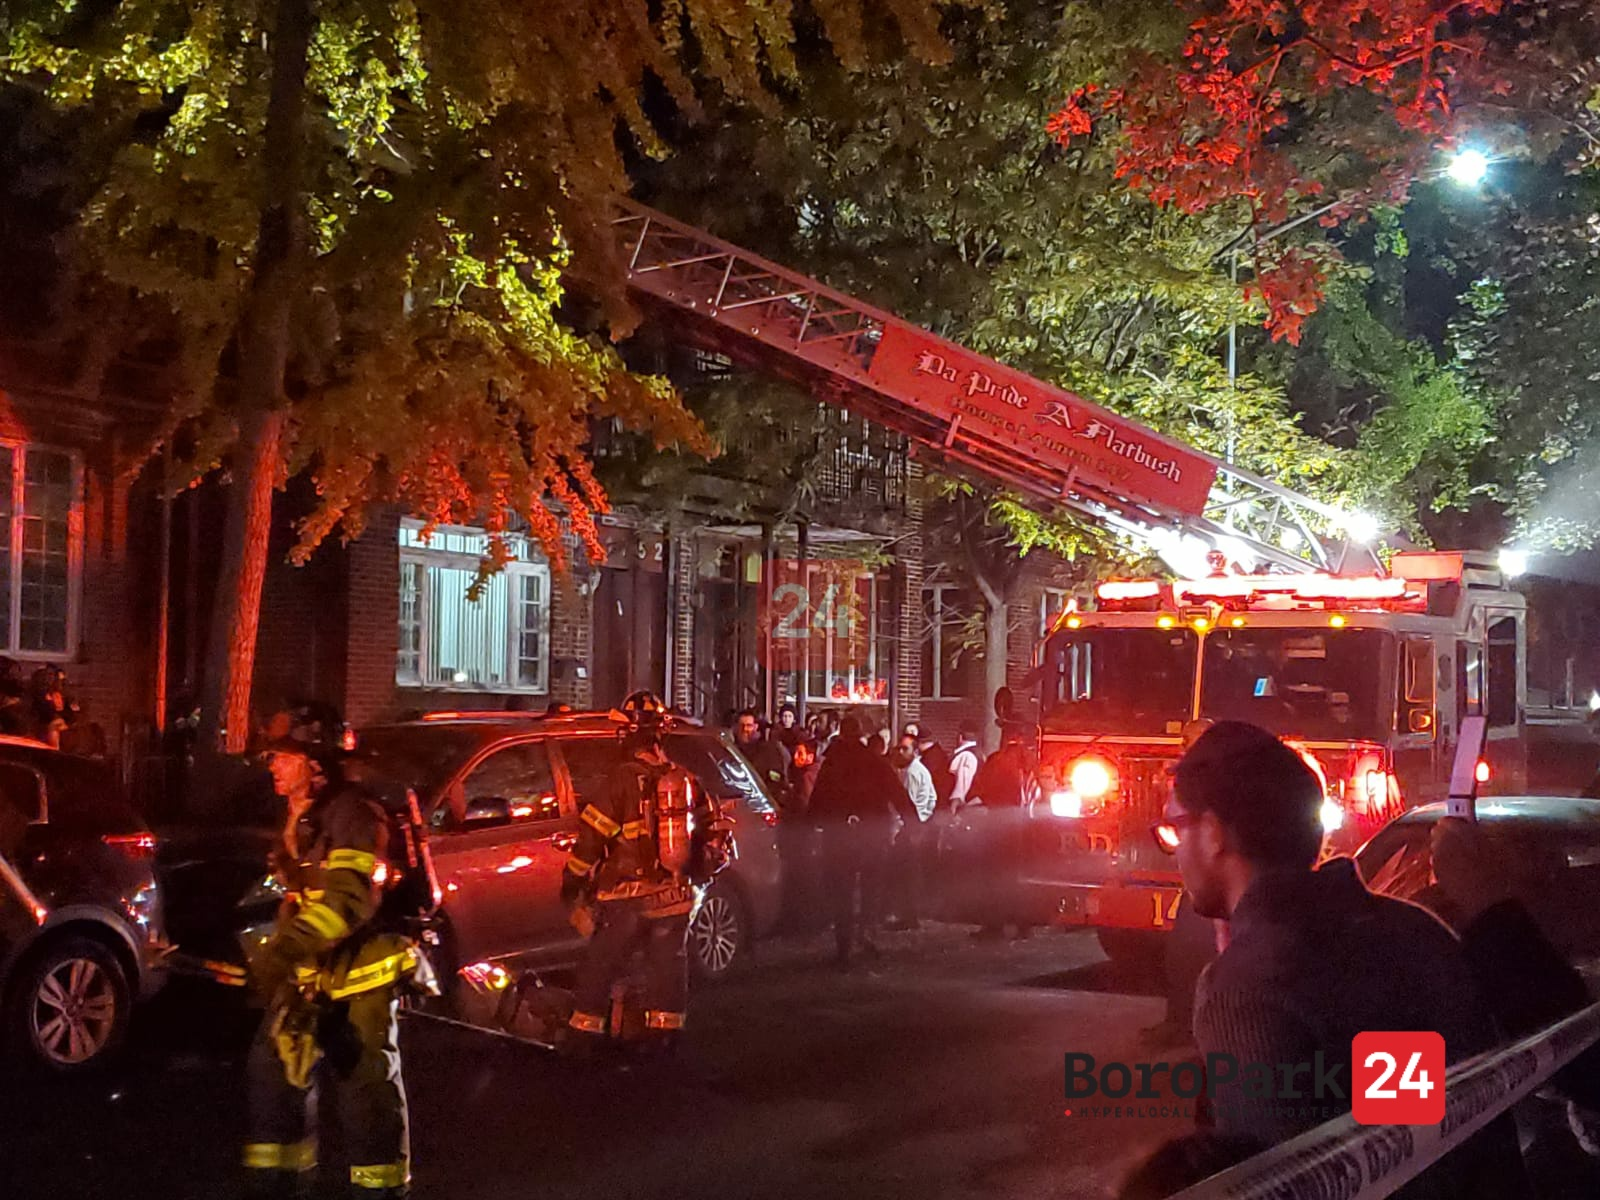 One Person Injured Following House Fire on 50th Street